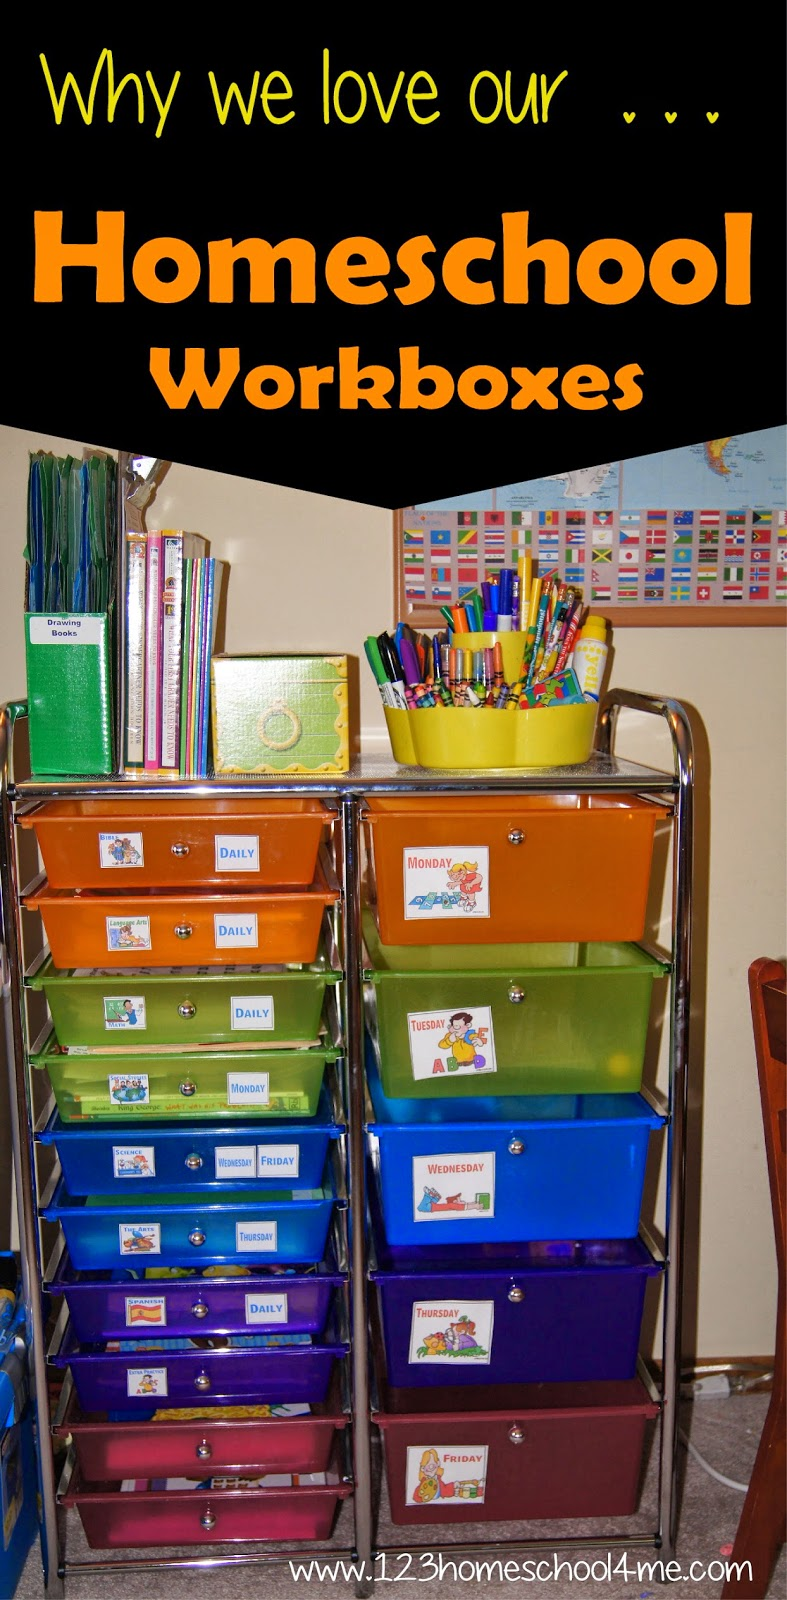 Workboxes are a great way to organized your homeschool.